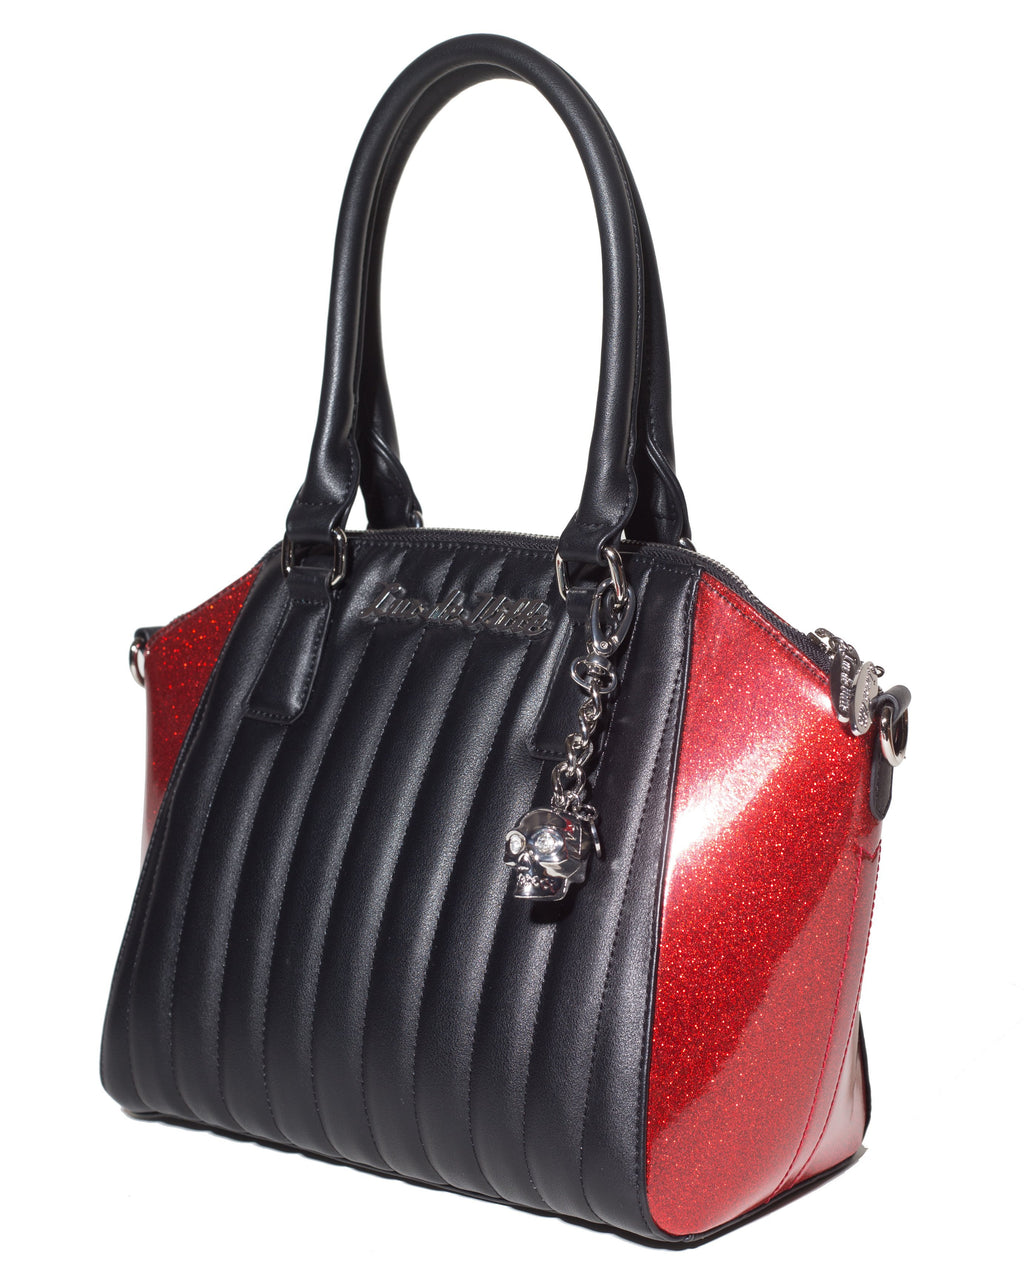 Lady Vamp Tote Black Matte and Venom Red Sparkle